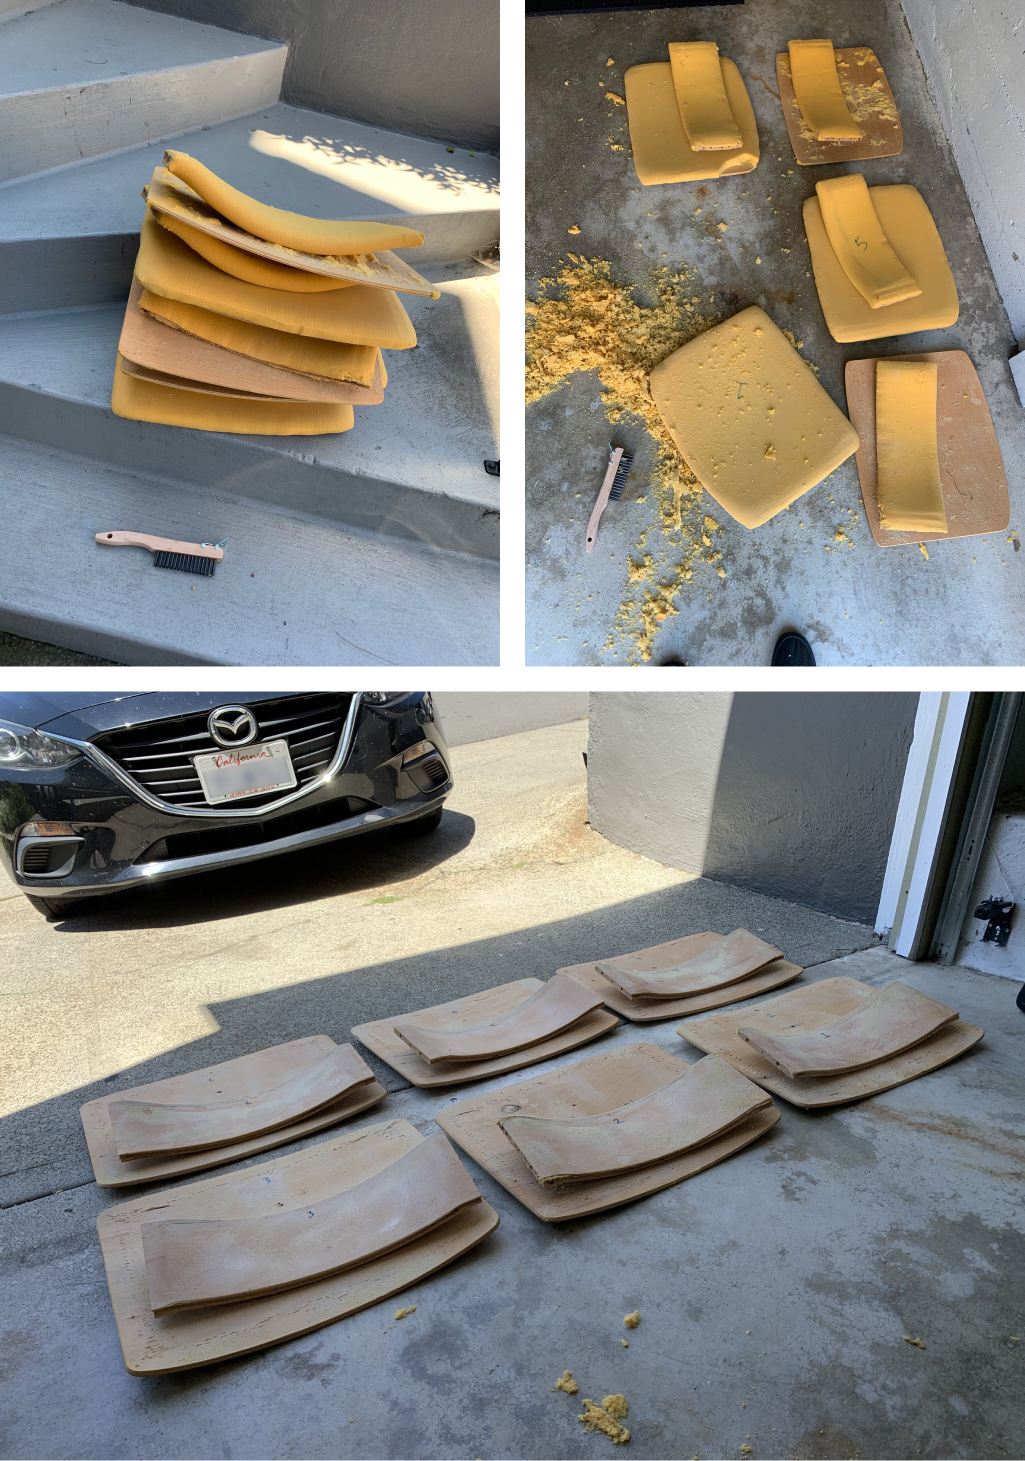 Photos showing chair seats and seat backs with old yellow foam being removed